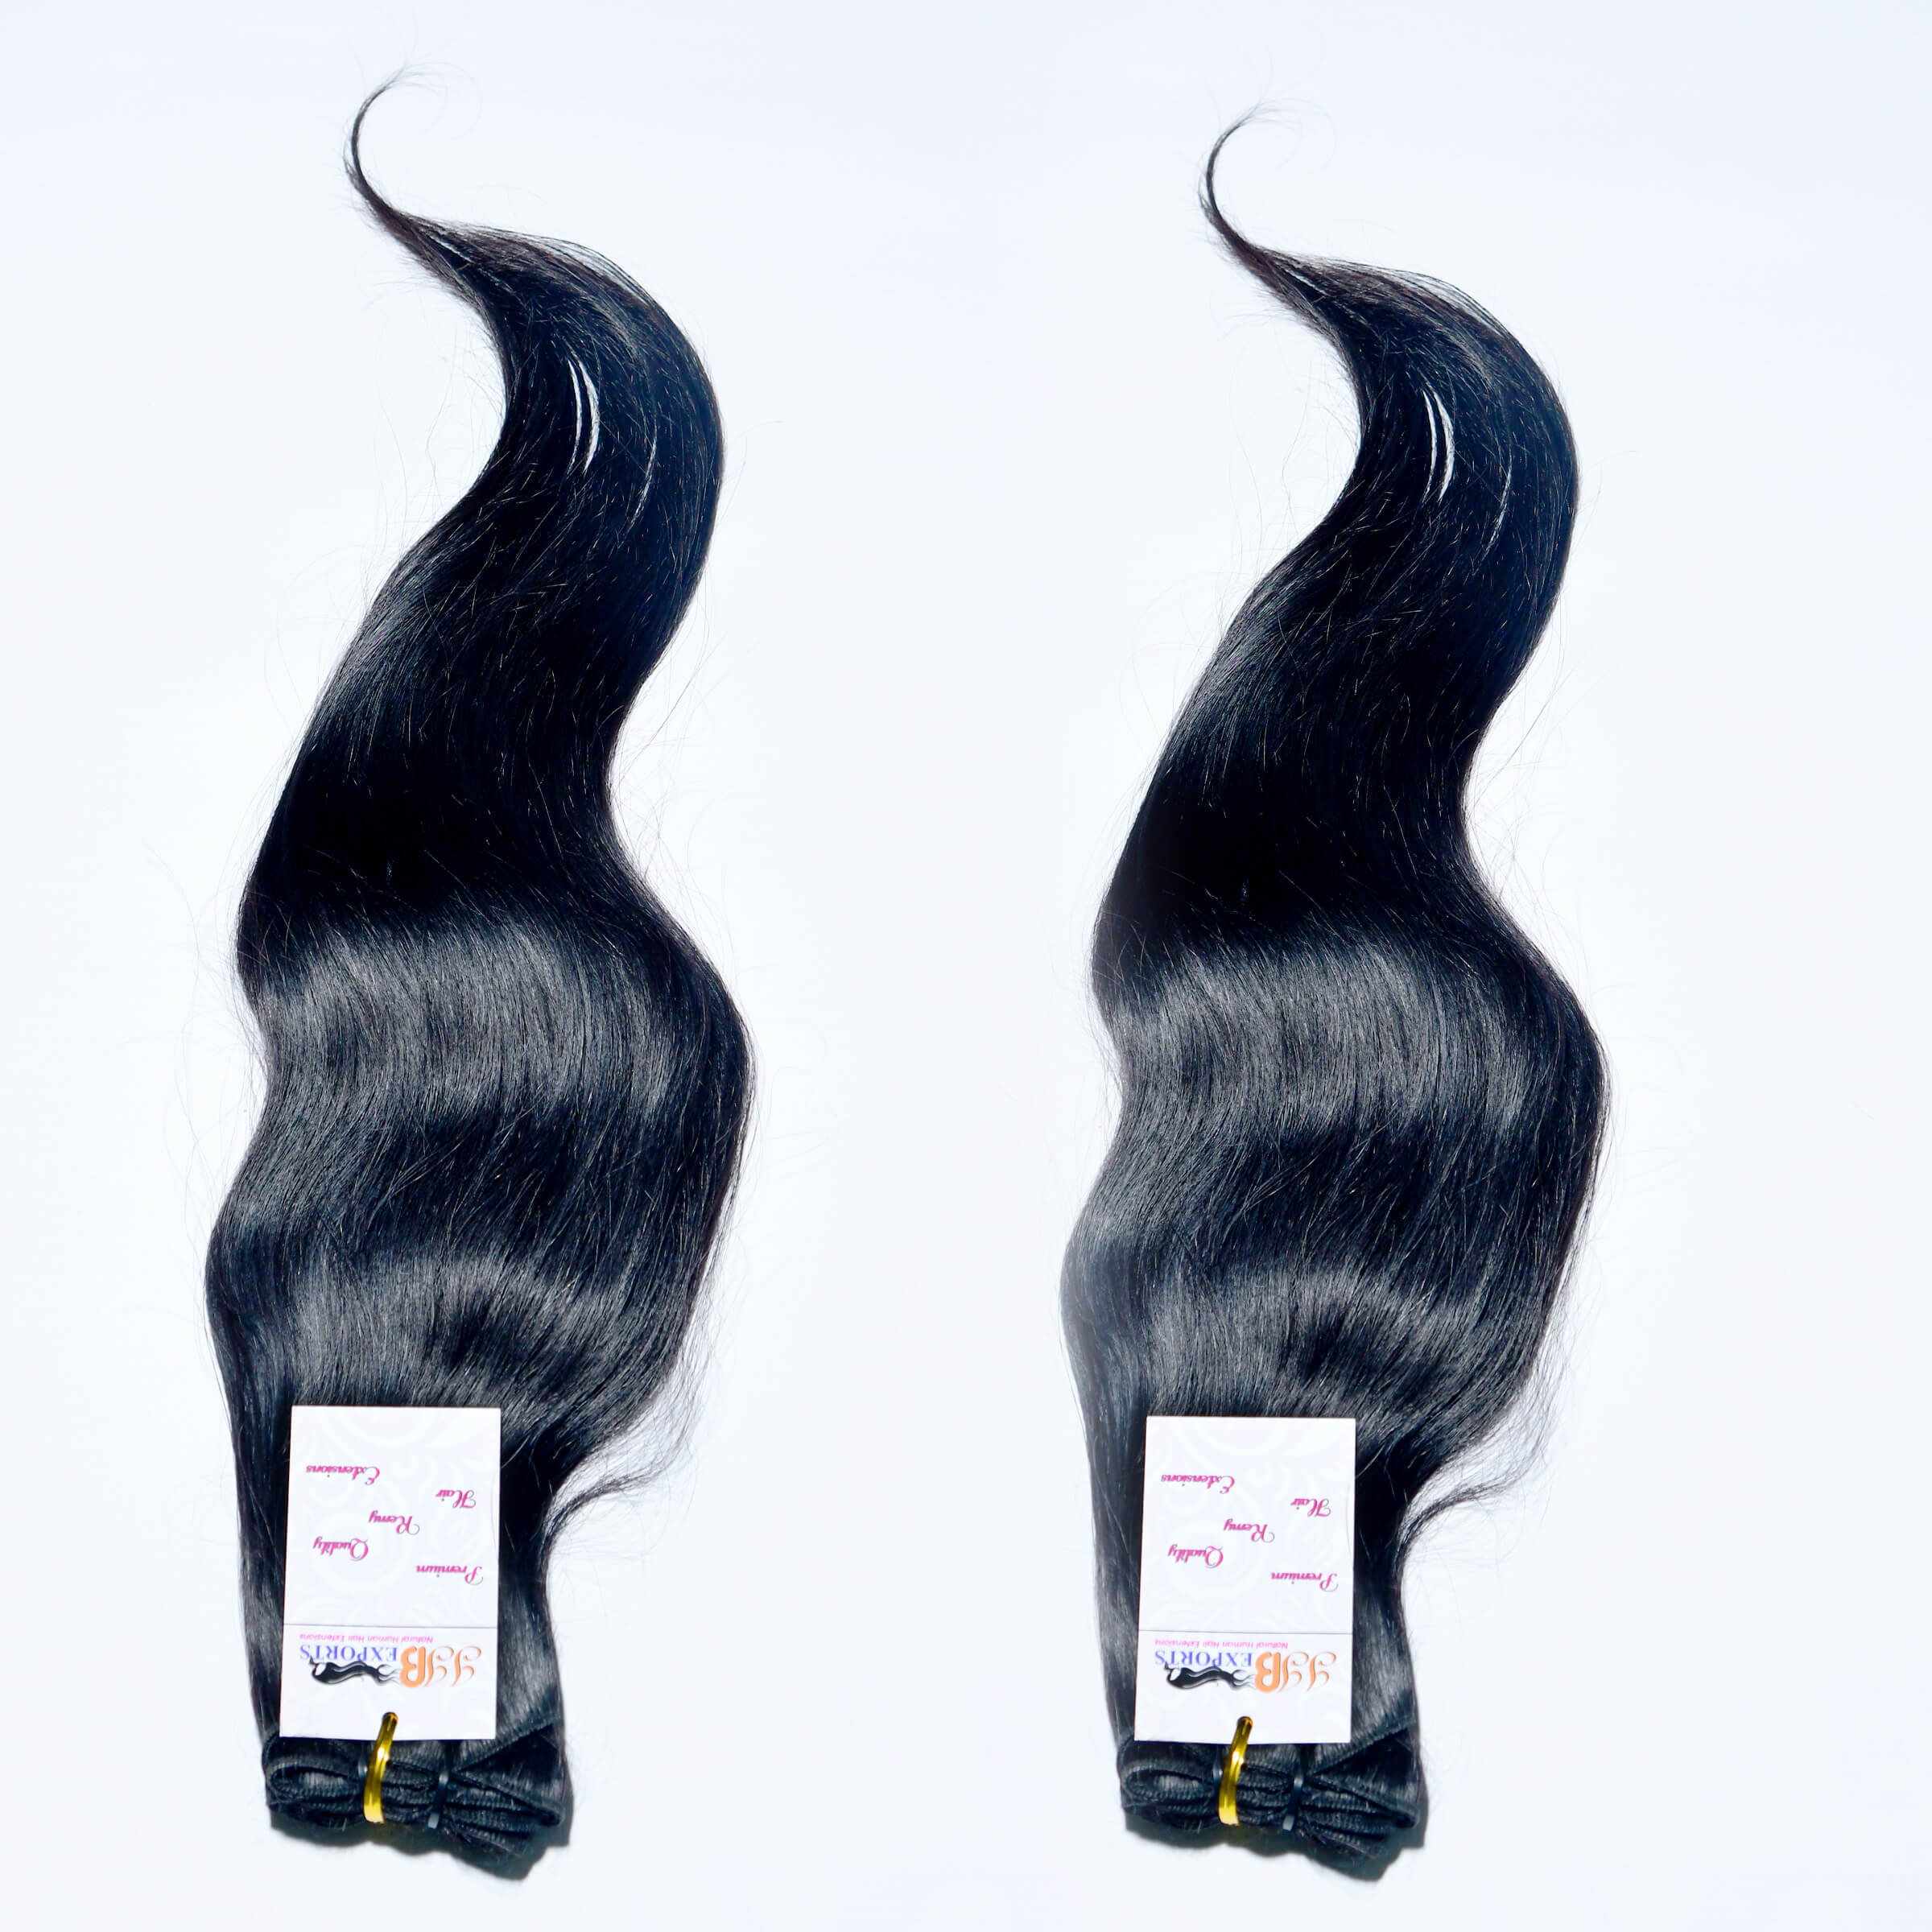 High quality 100% Natural Color Silky Straight Human Bulk Hair Extensions in Wholesale Price Rate